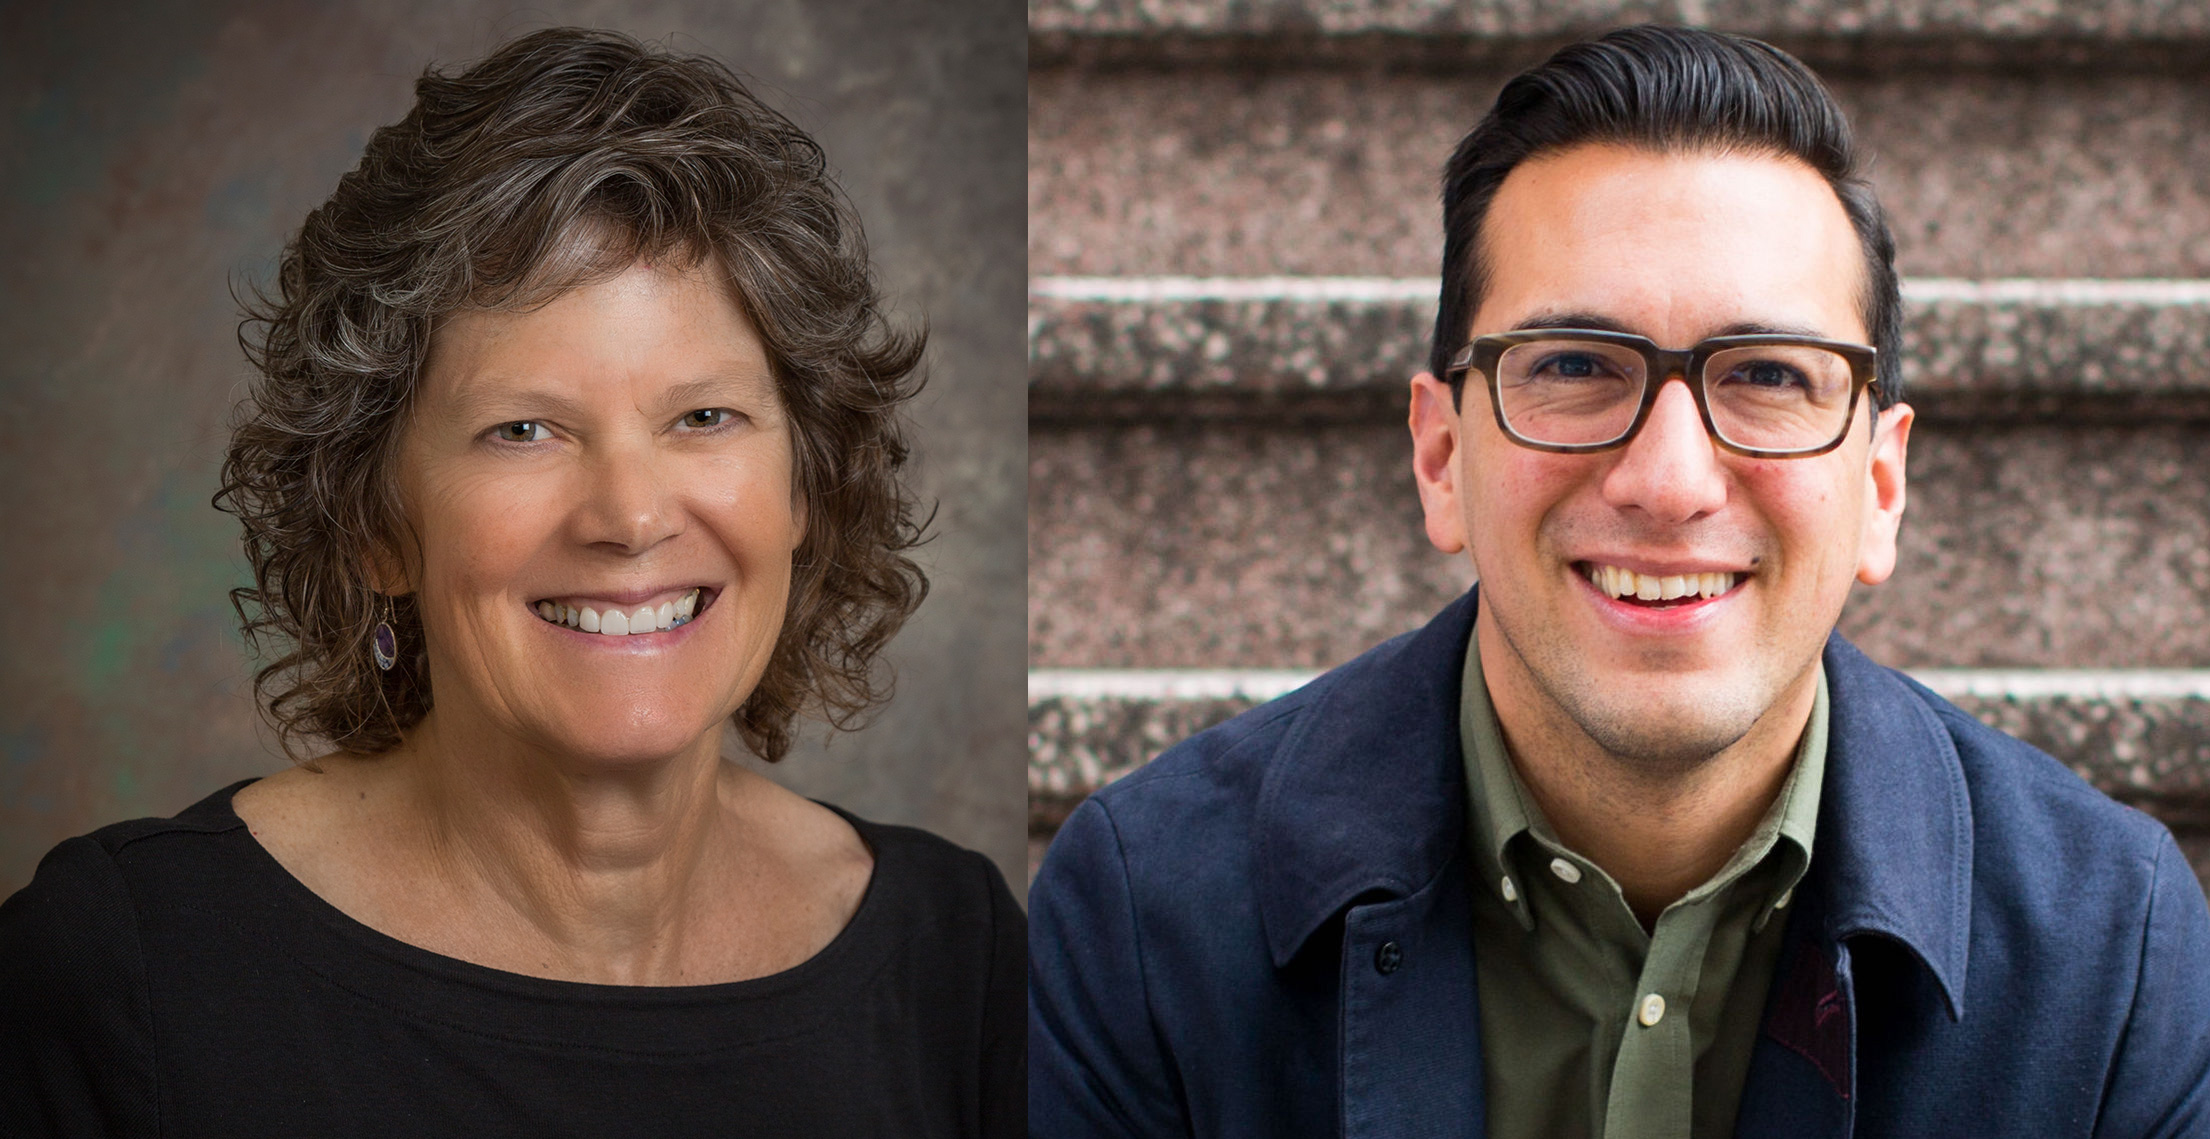 (Left) Dr. Mary Dozier, a developmental psychologist at the University of Delaware; (Right) Dr. Jamil Zaki, a social neuroscientist at Stanford University